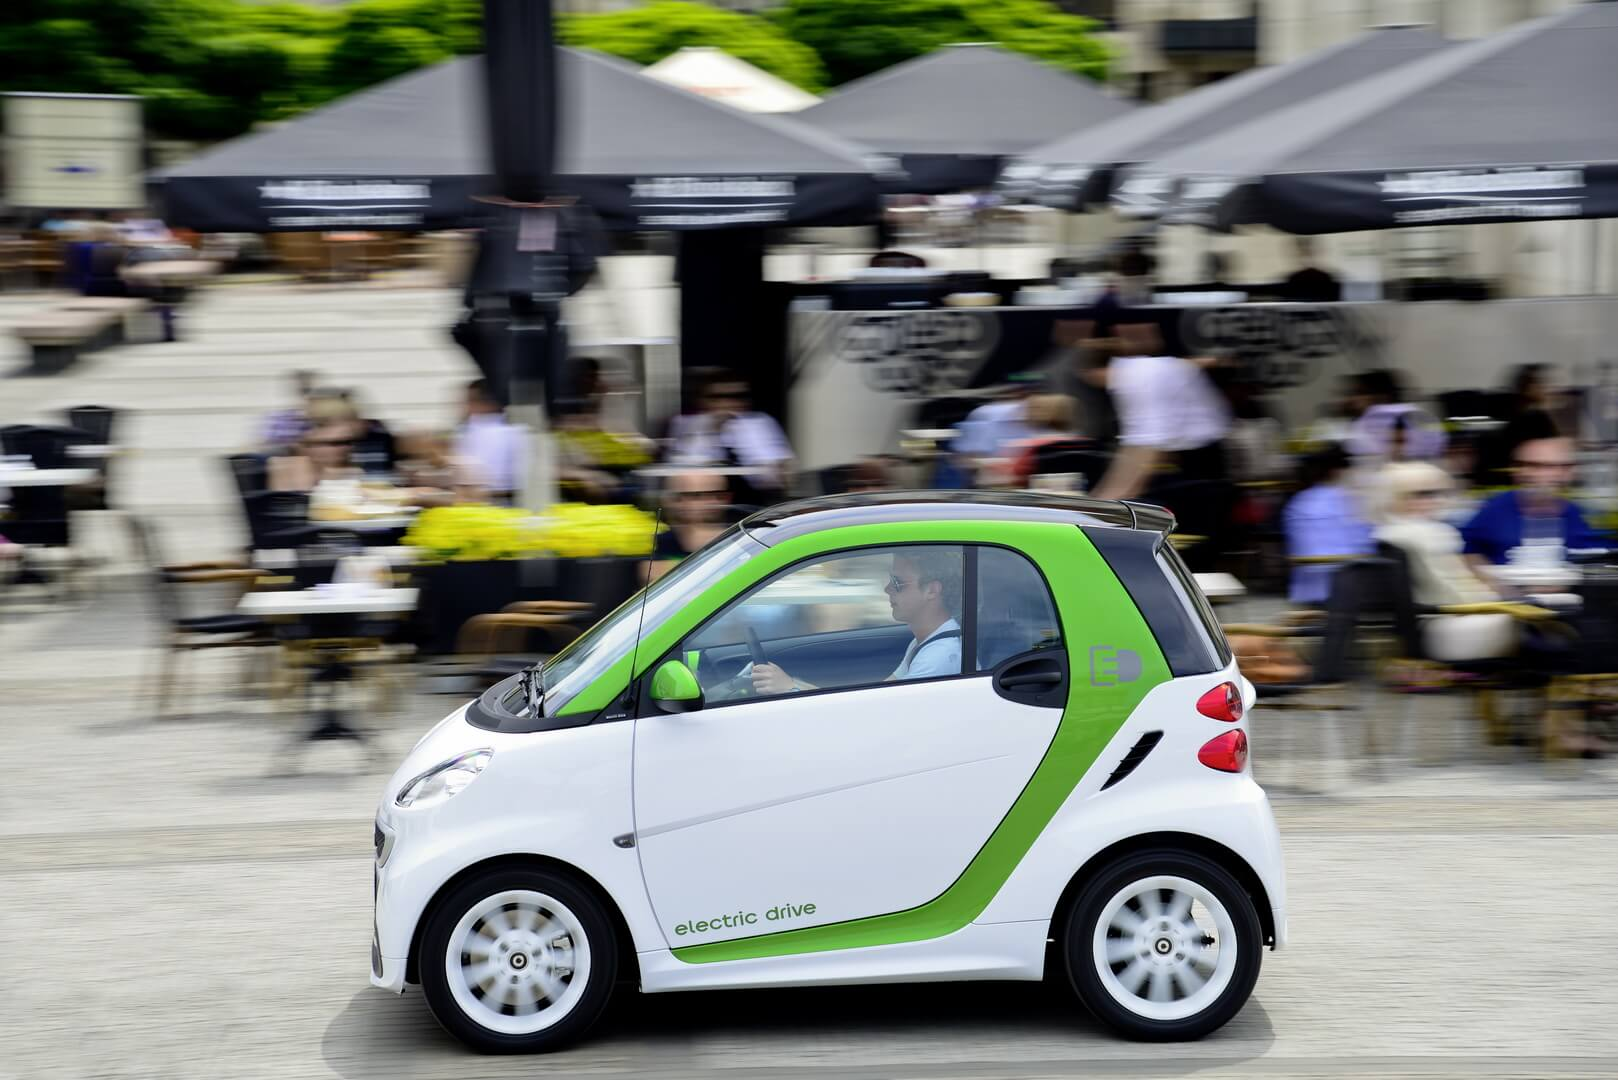 Smart Fortwo Electric Drive 2012-exterior-21